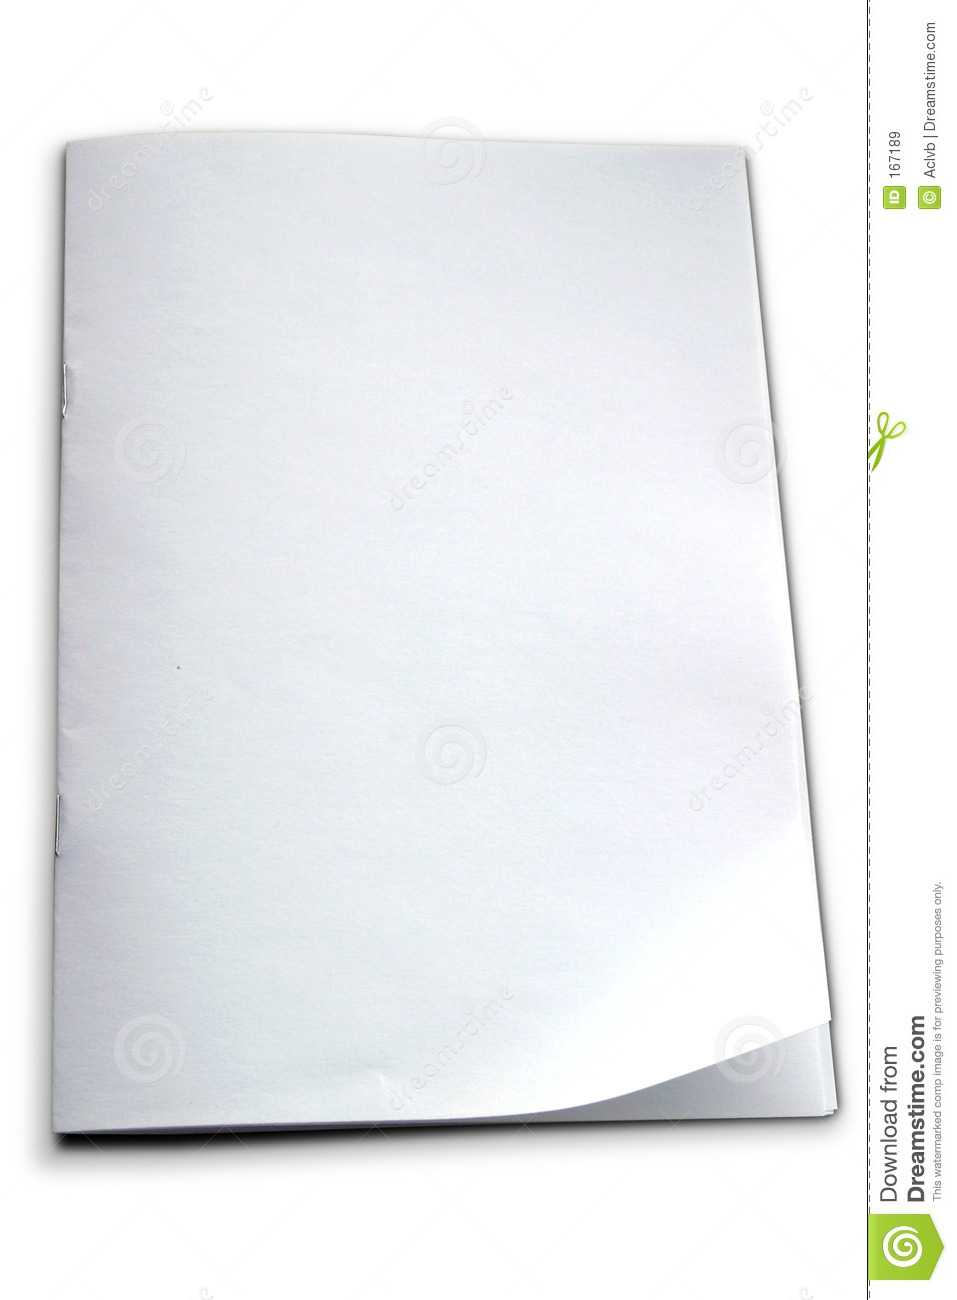 White Booklet Template Stock Image. Image Of Booklet, Book In Blank Magazine Template Psd